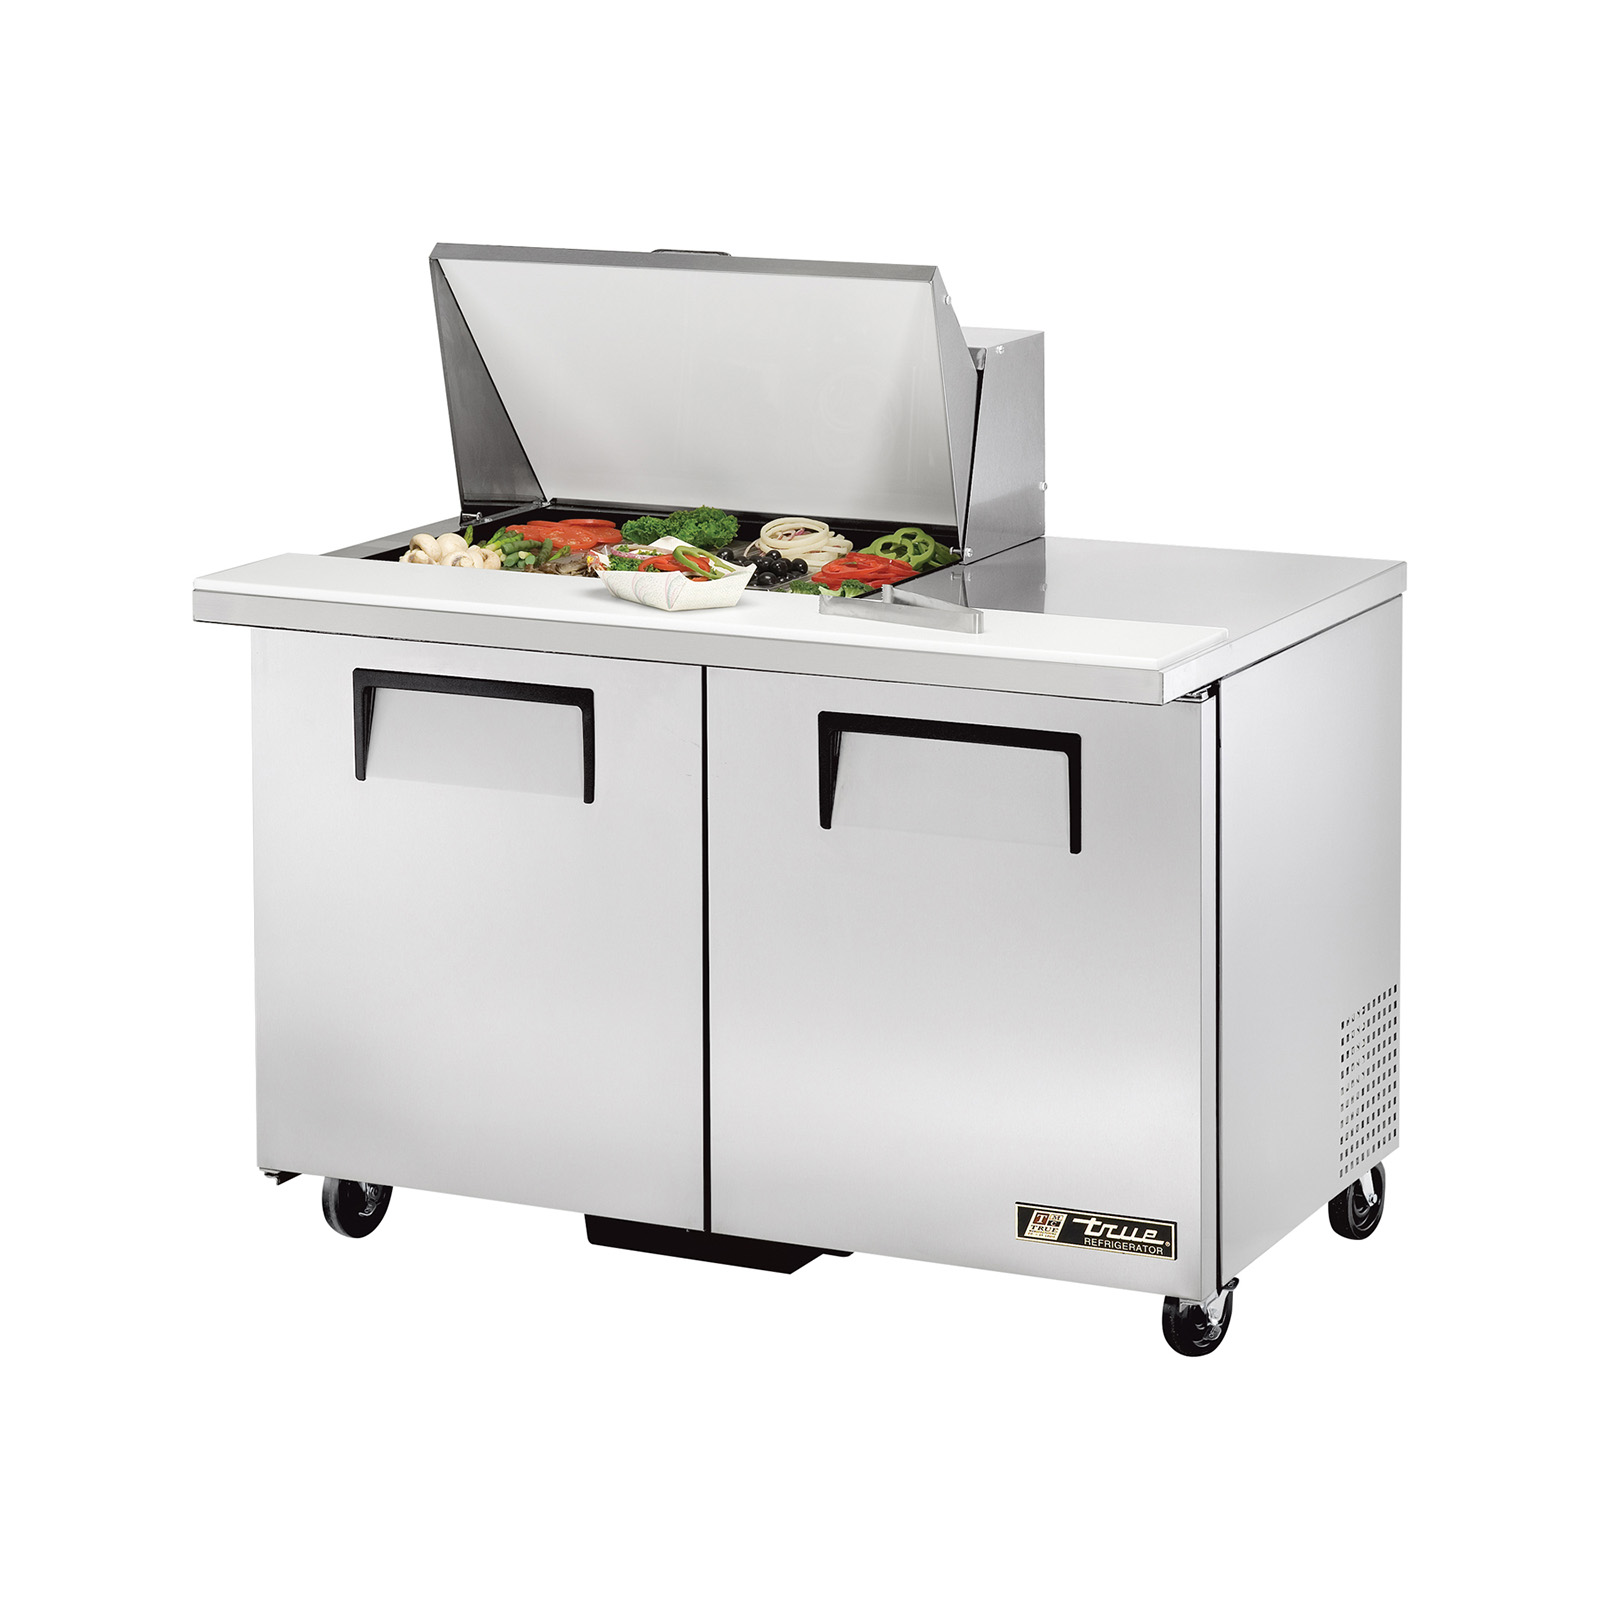 TSSU-48-12M-B True - Mega Top Sandwich/Salad Unit (12) 1/6 size (4